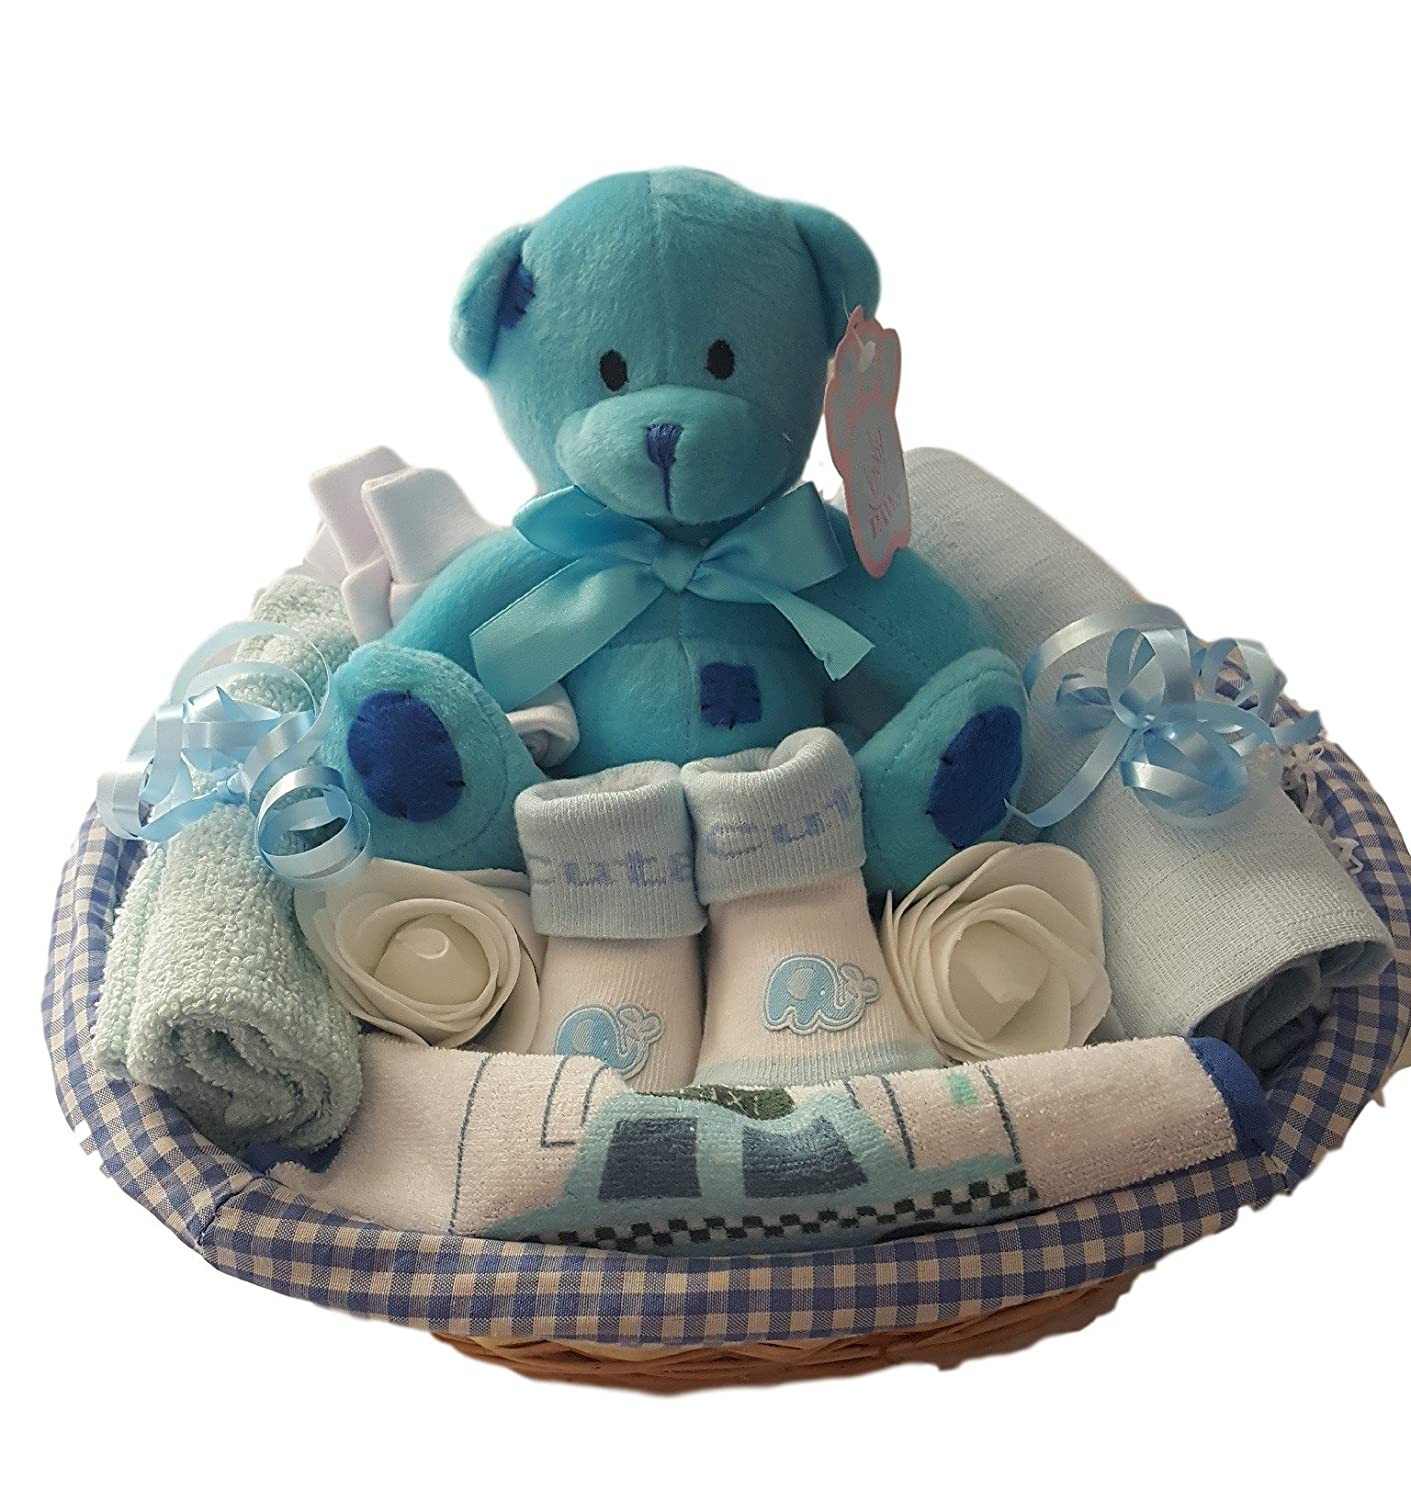 Baby Gift Basket Boy. Baby Gift Hamper Boy. Baby Gift Set Boy. Baby Shower Gift Basket. New Baby Gift. The Gift Basket Boutique